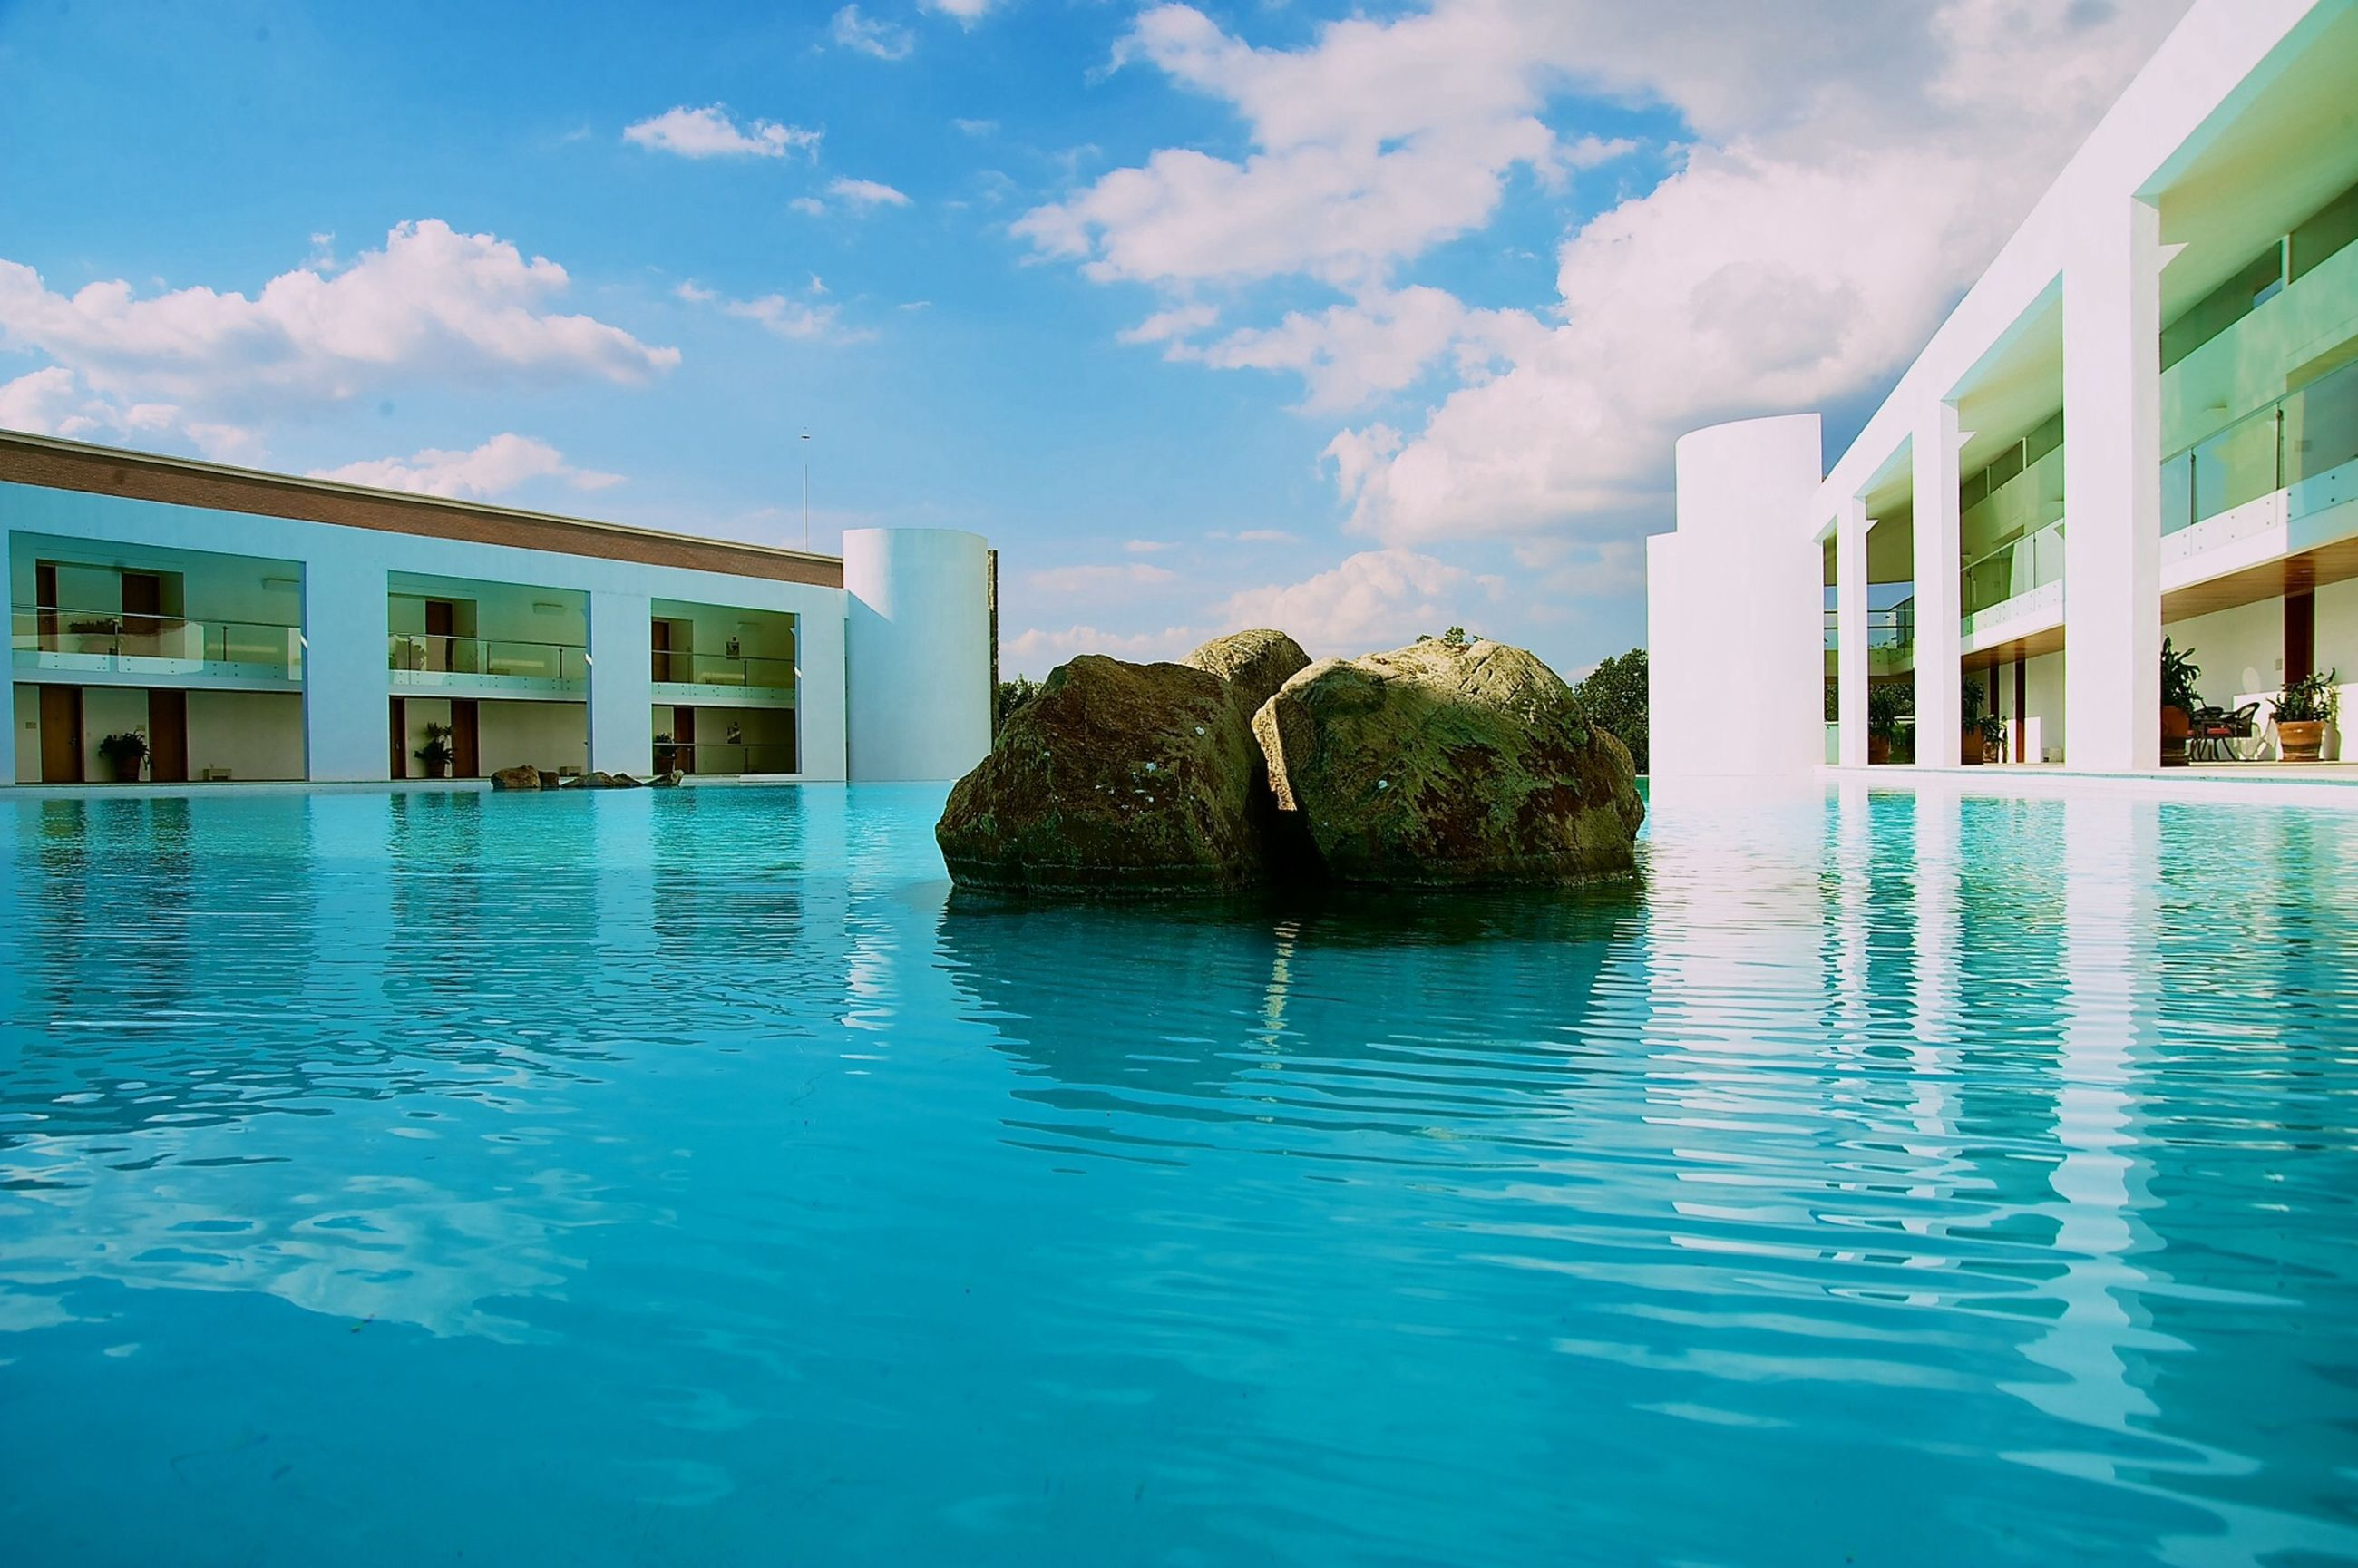 water, architecture, building exterior, built structure, sky, waterfront, reflection, cloud - sky, swimming pool, blue, cloud, house, building, rippled, residential building, residential structure, day, window, outdoors, nature